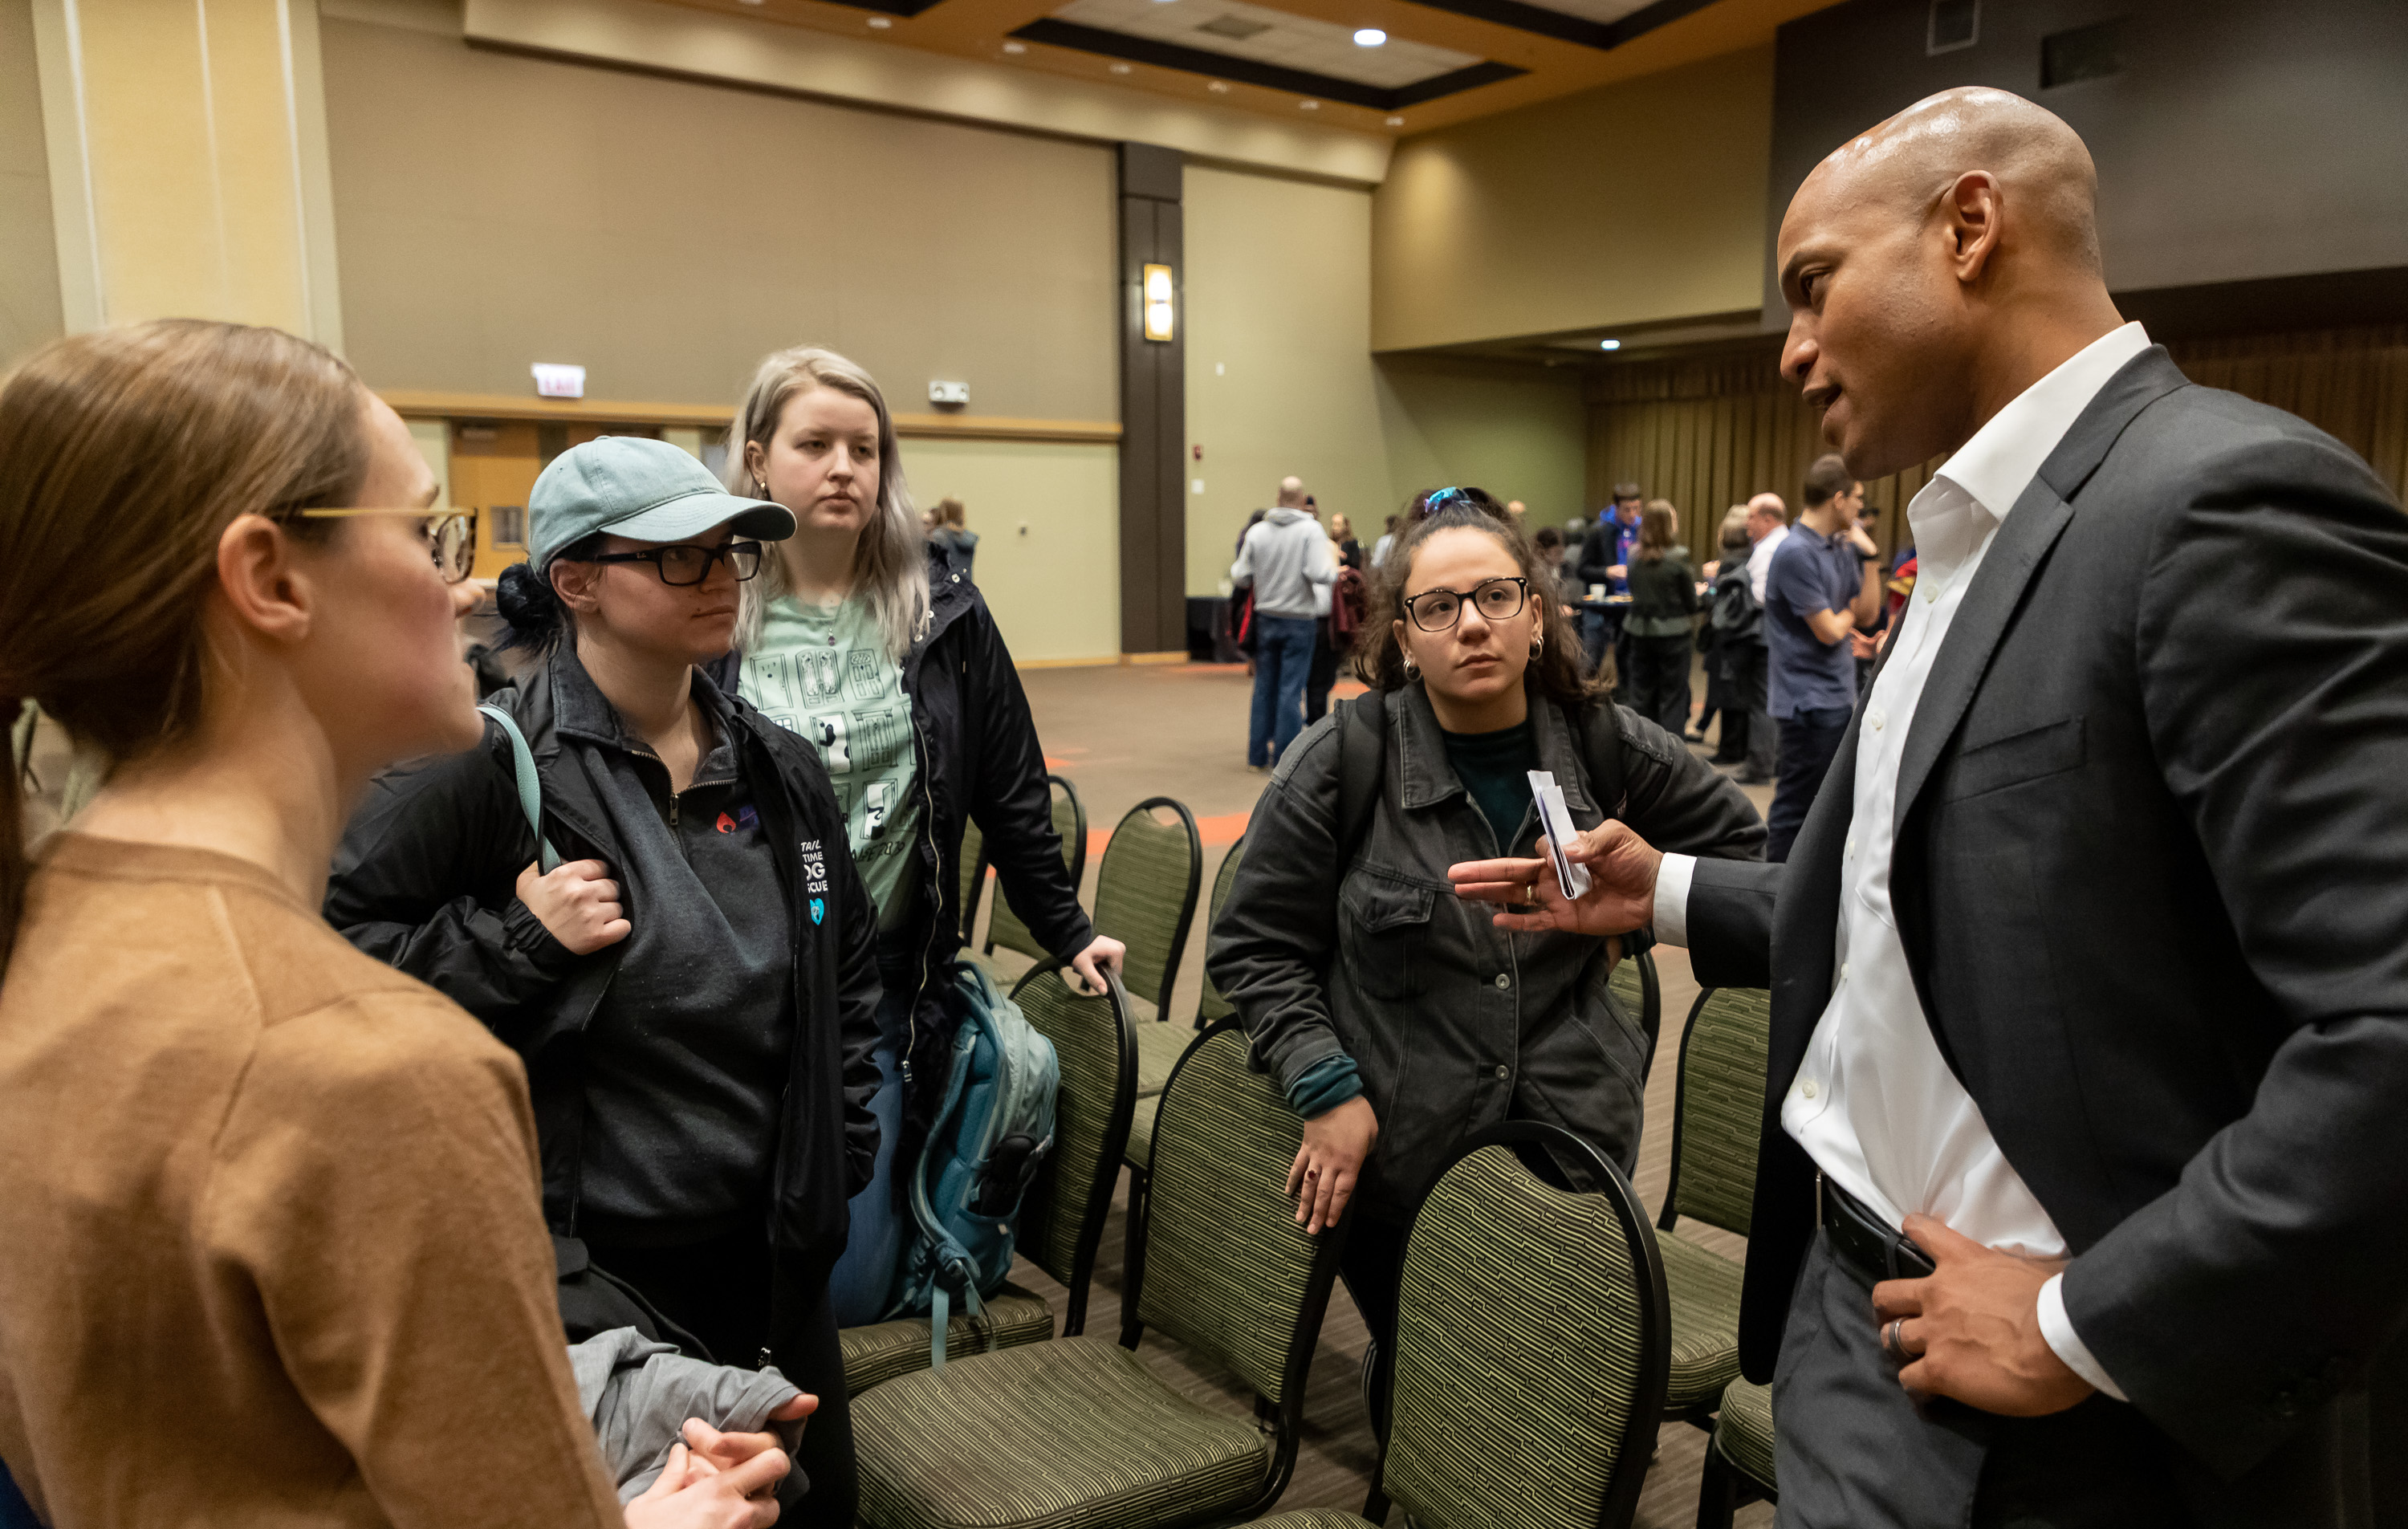 Wes Moore talks with students who attended the presentation during a reception after the event. (DePaul University/Jeff Carrion)